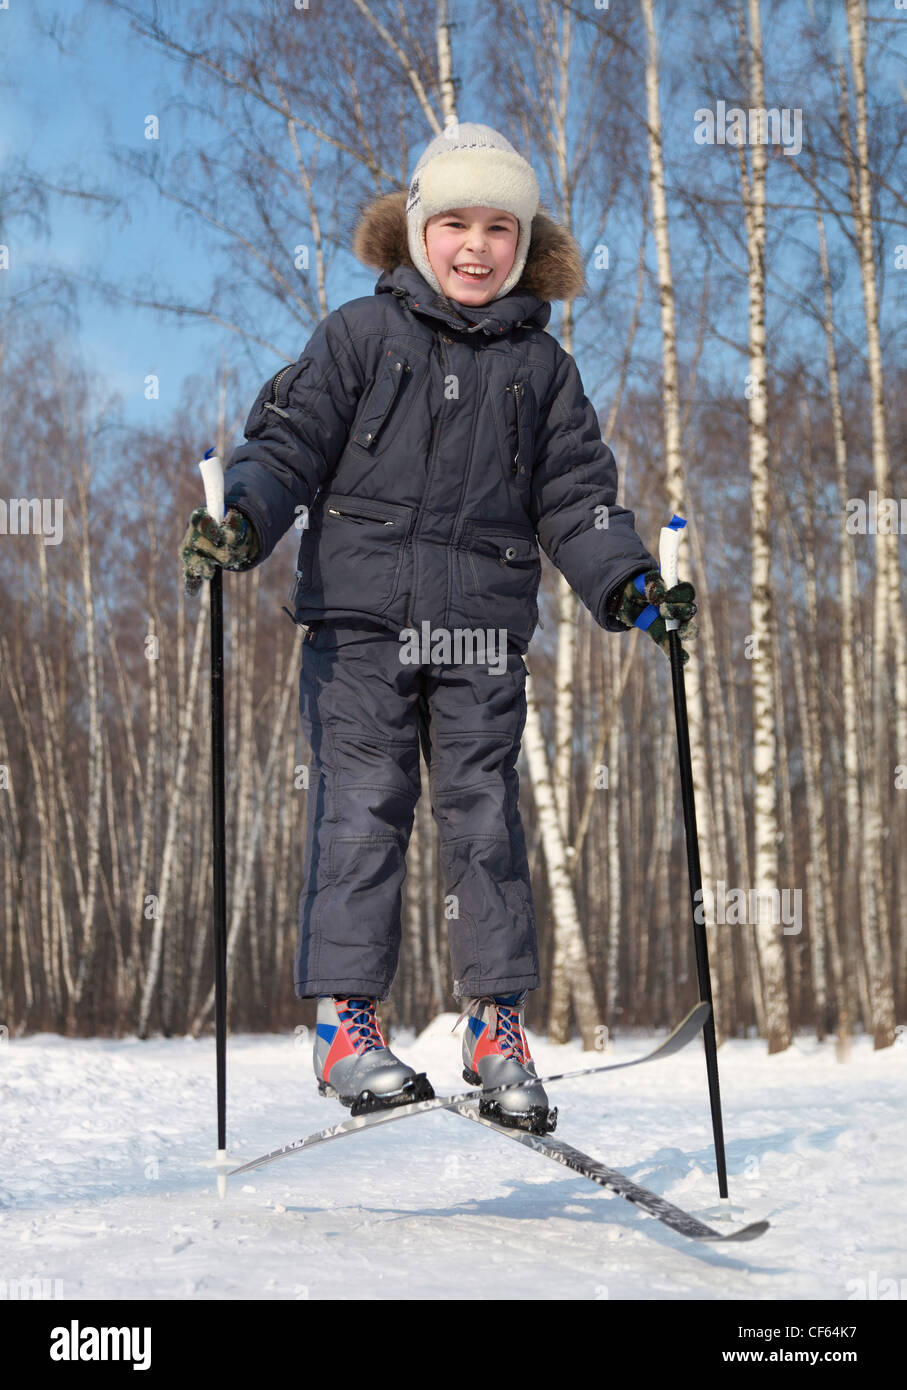 Young boy jumps and crosses cross-country skis inside winter forest at sunny day - Stock Image